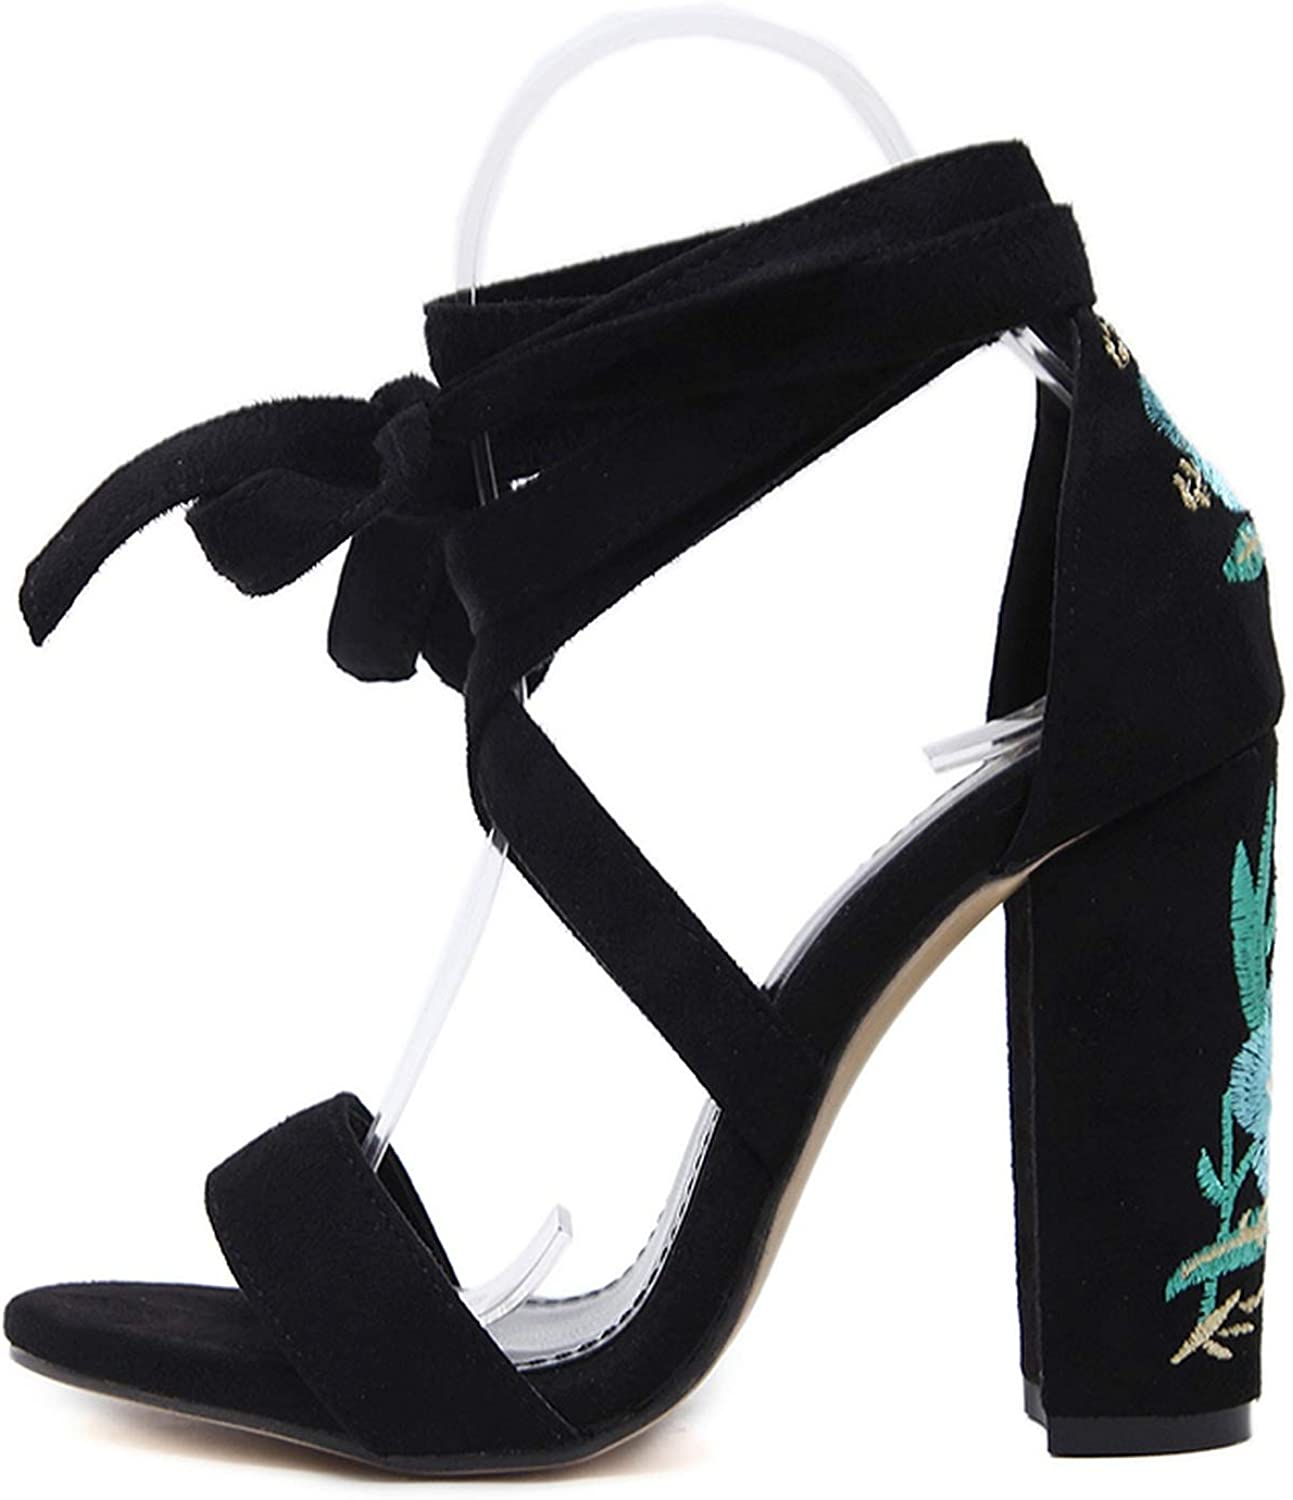 FanRen Sandals High Heels shoes Embroider Ankle Strap Thick Heels Wedding Party Lace Up shoes